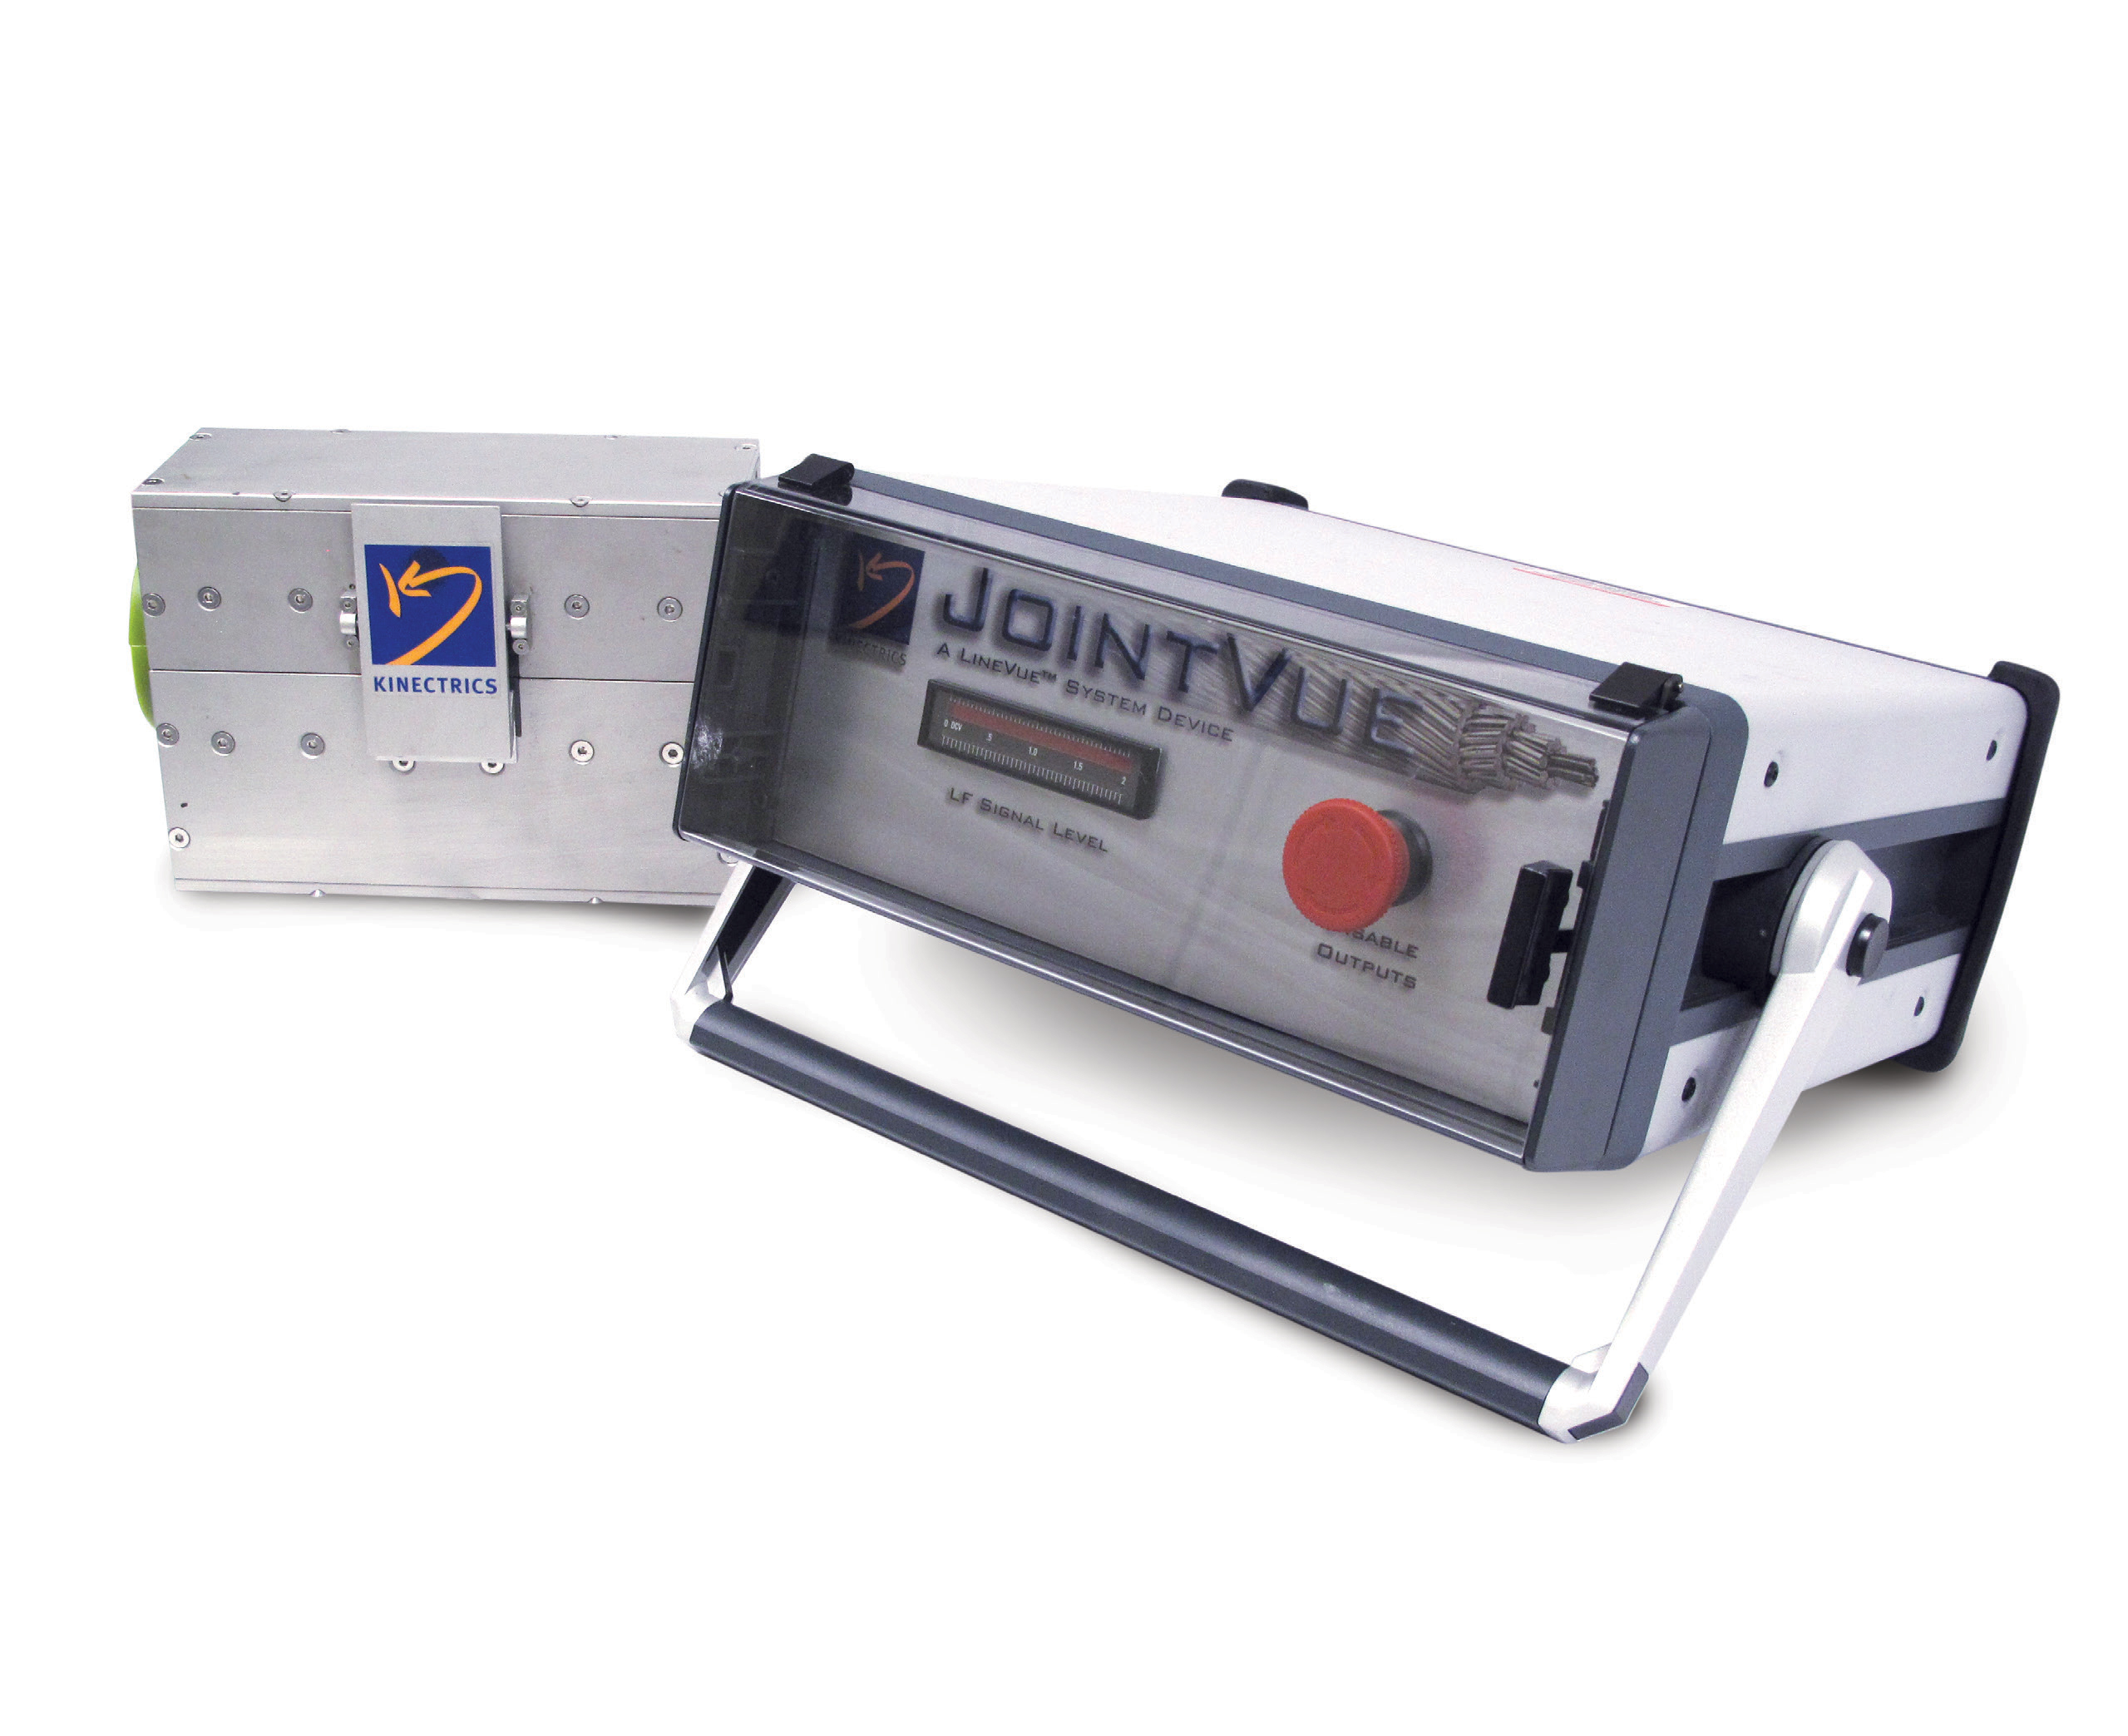 front image of JointVue system